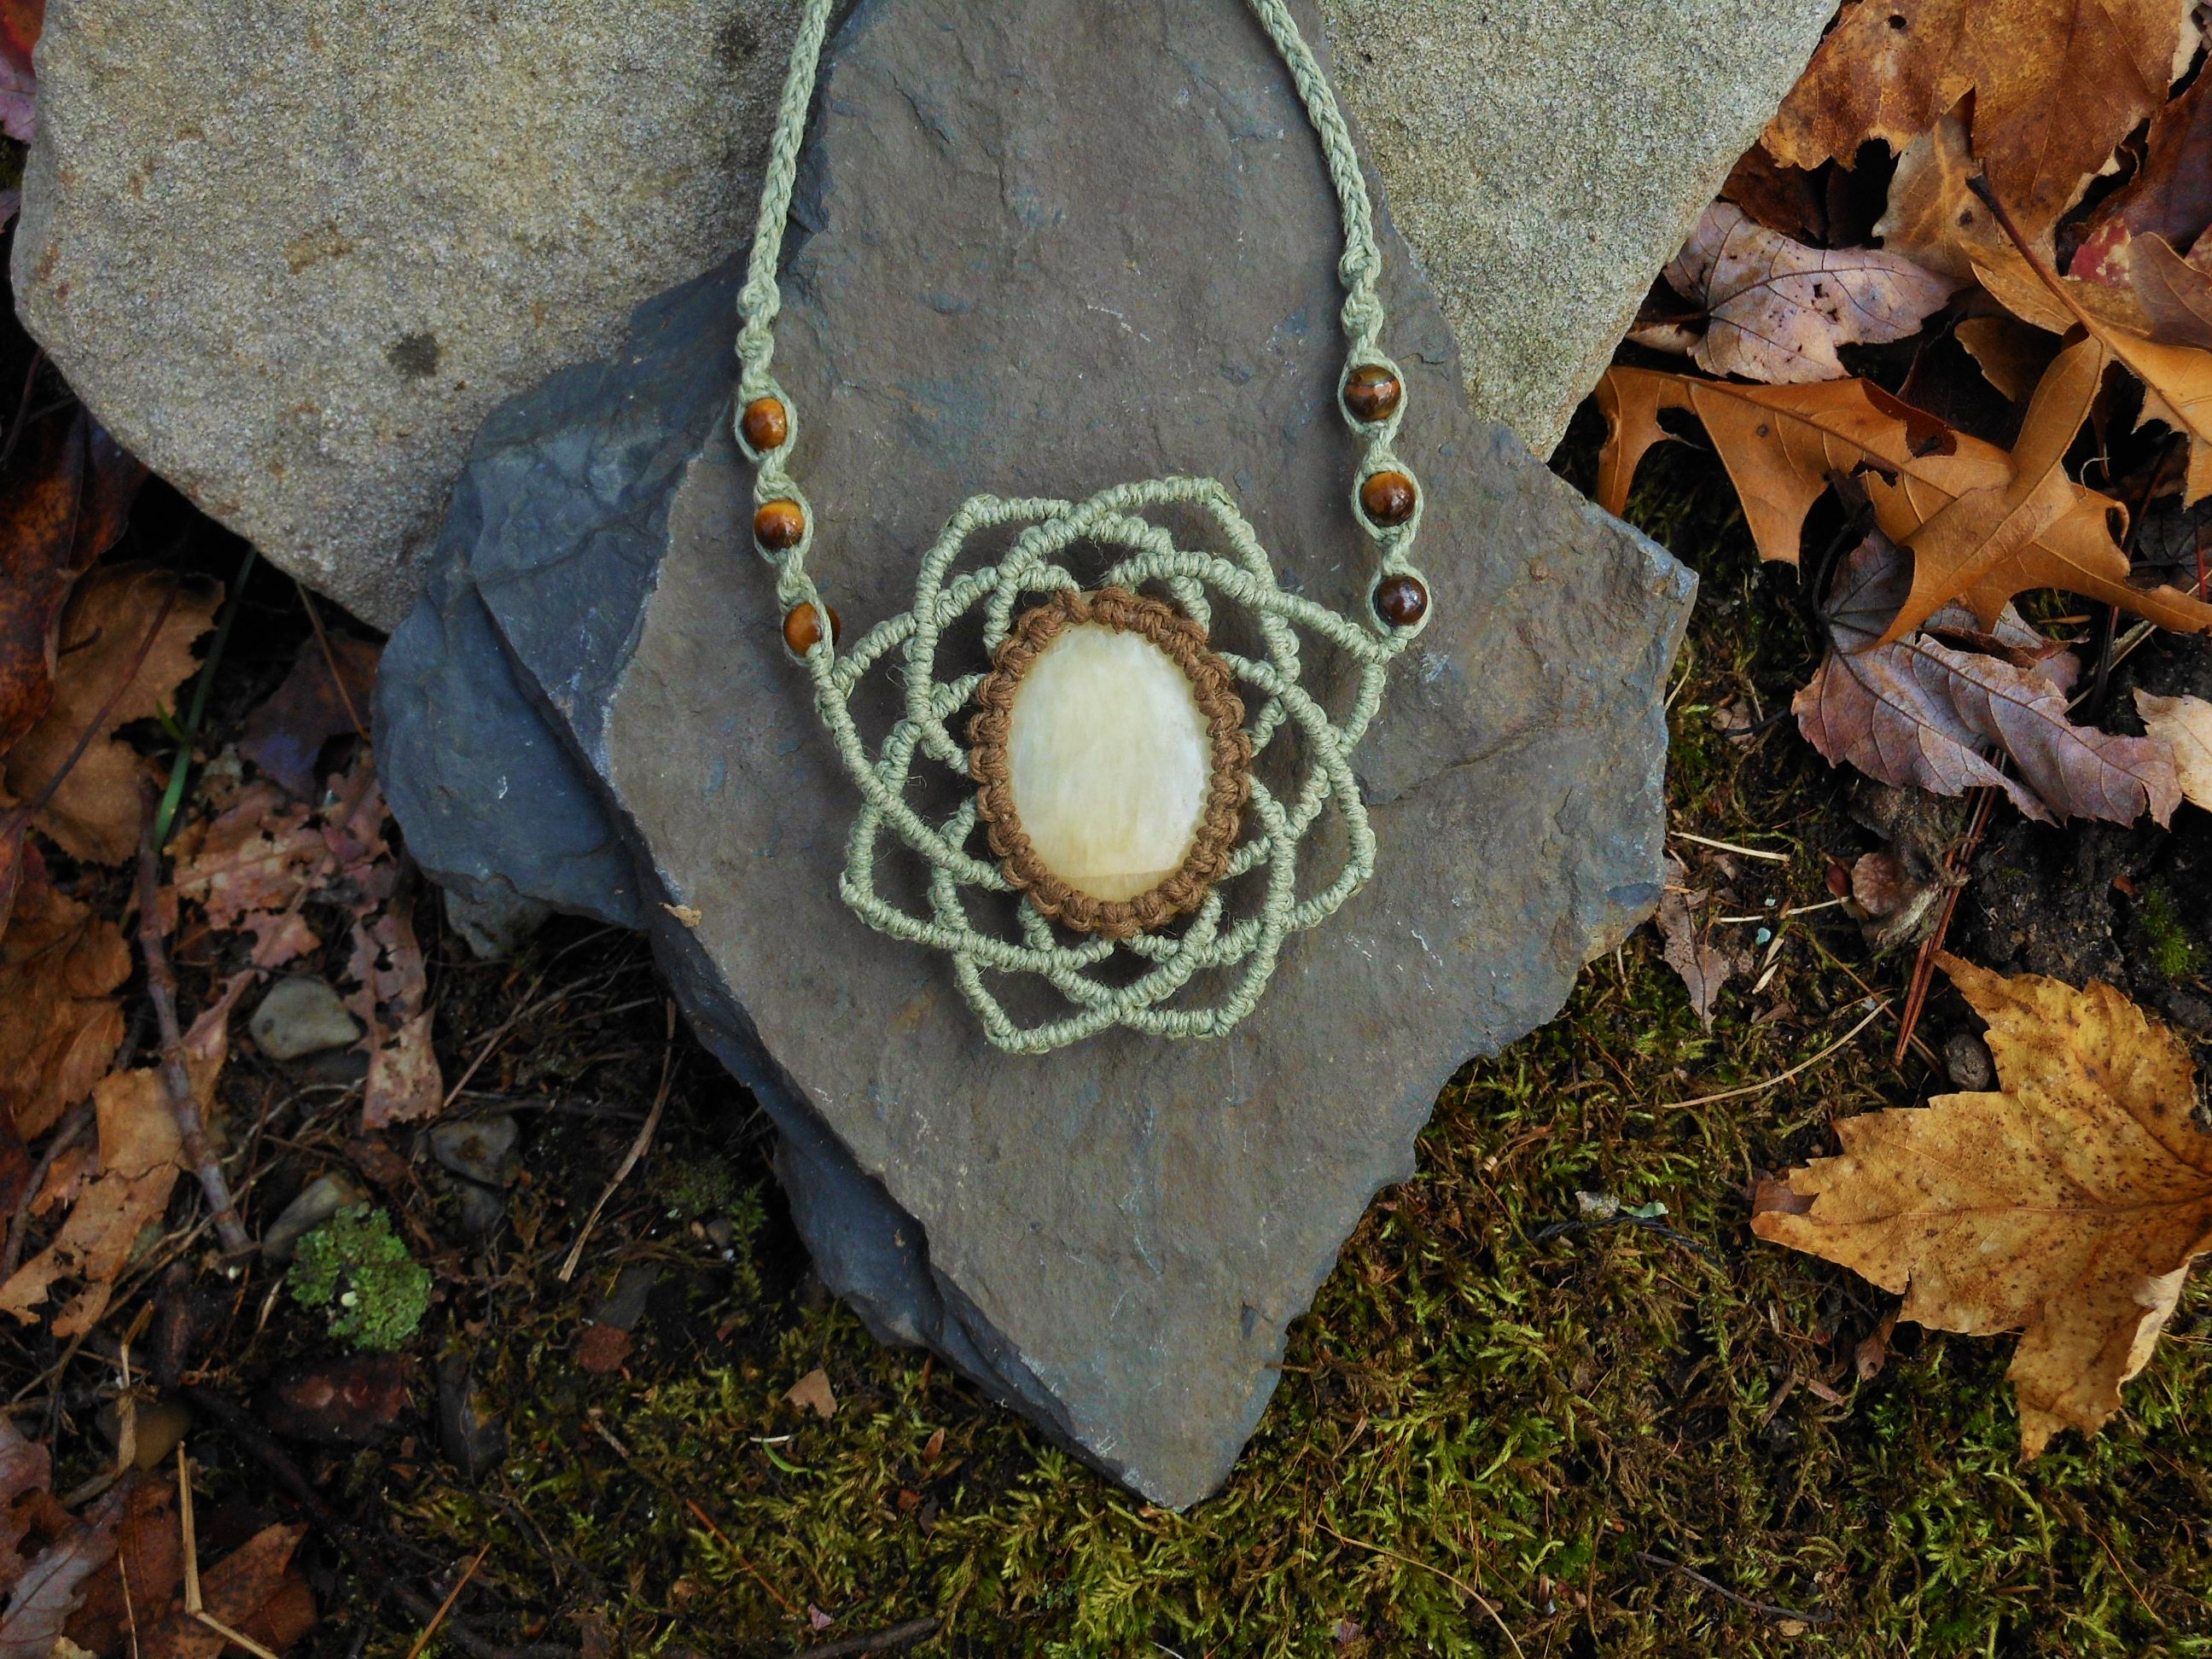 Calcite Flower Of Life Macrame Hemp Necklace Rhihemptions Online Store Powered By Storenvy